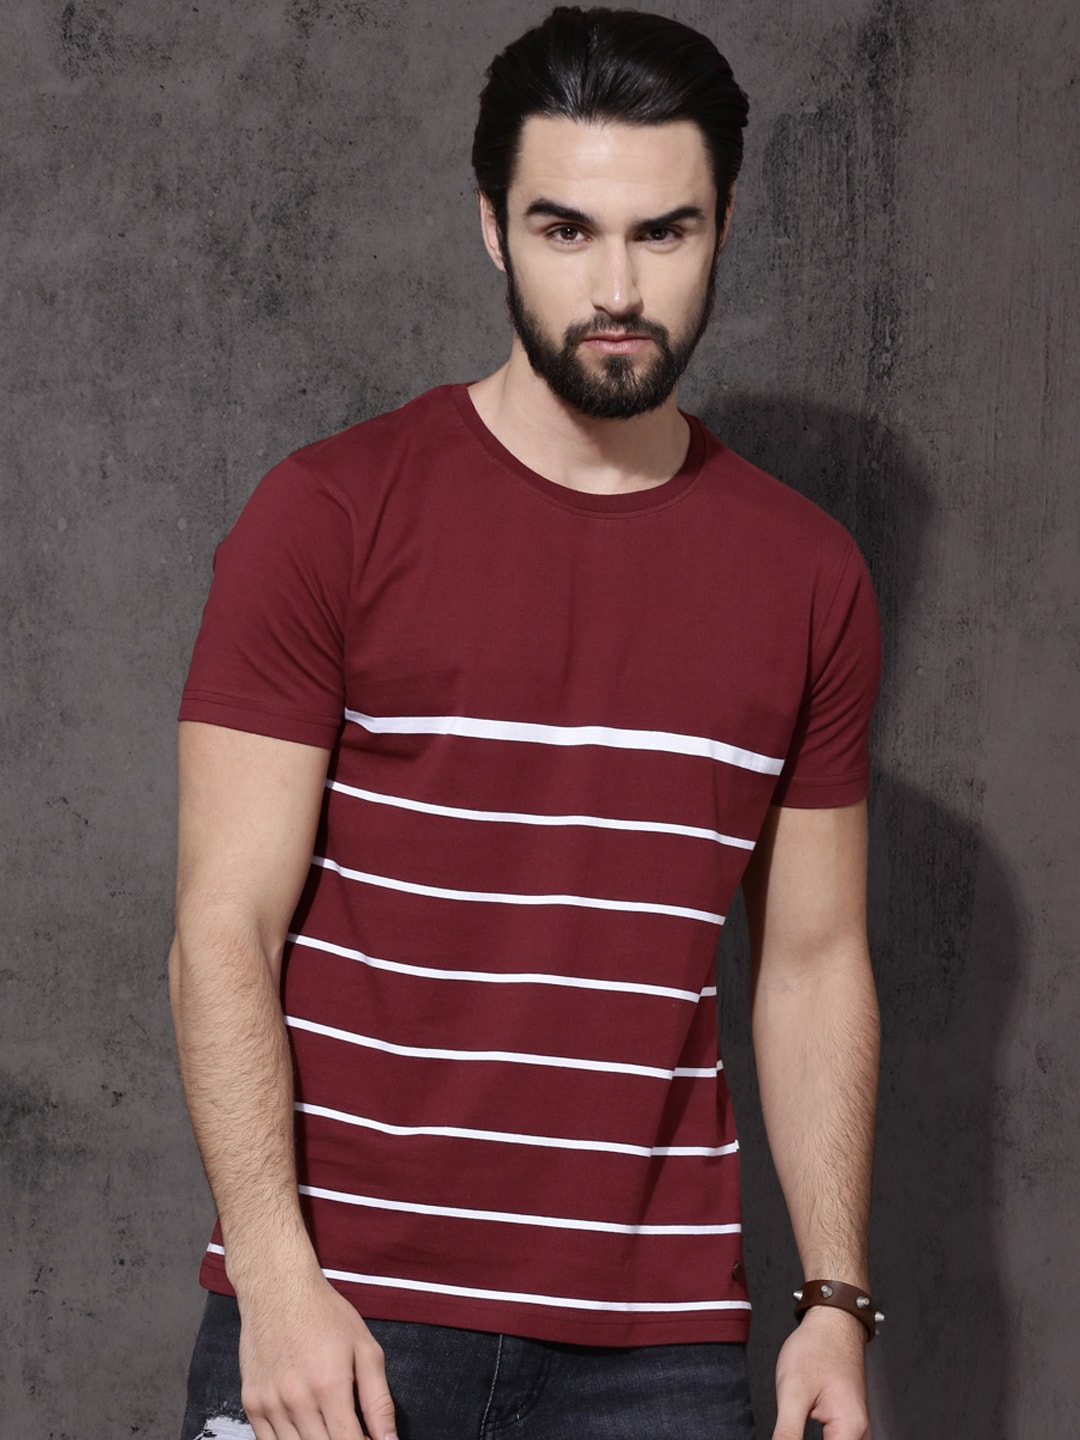 Buy Roadster Maroon & White Striped Round Neck Men's T-shirt At Best Price